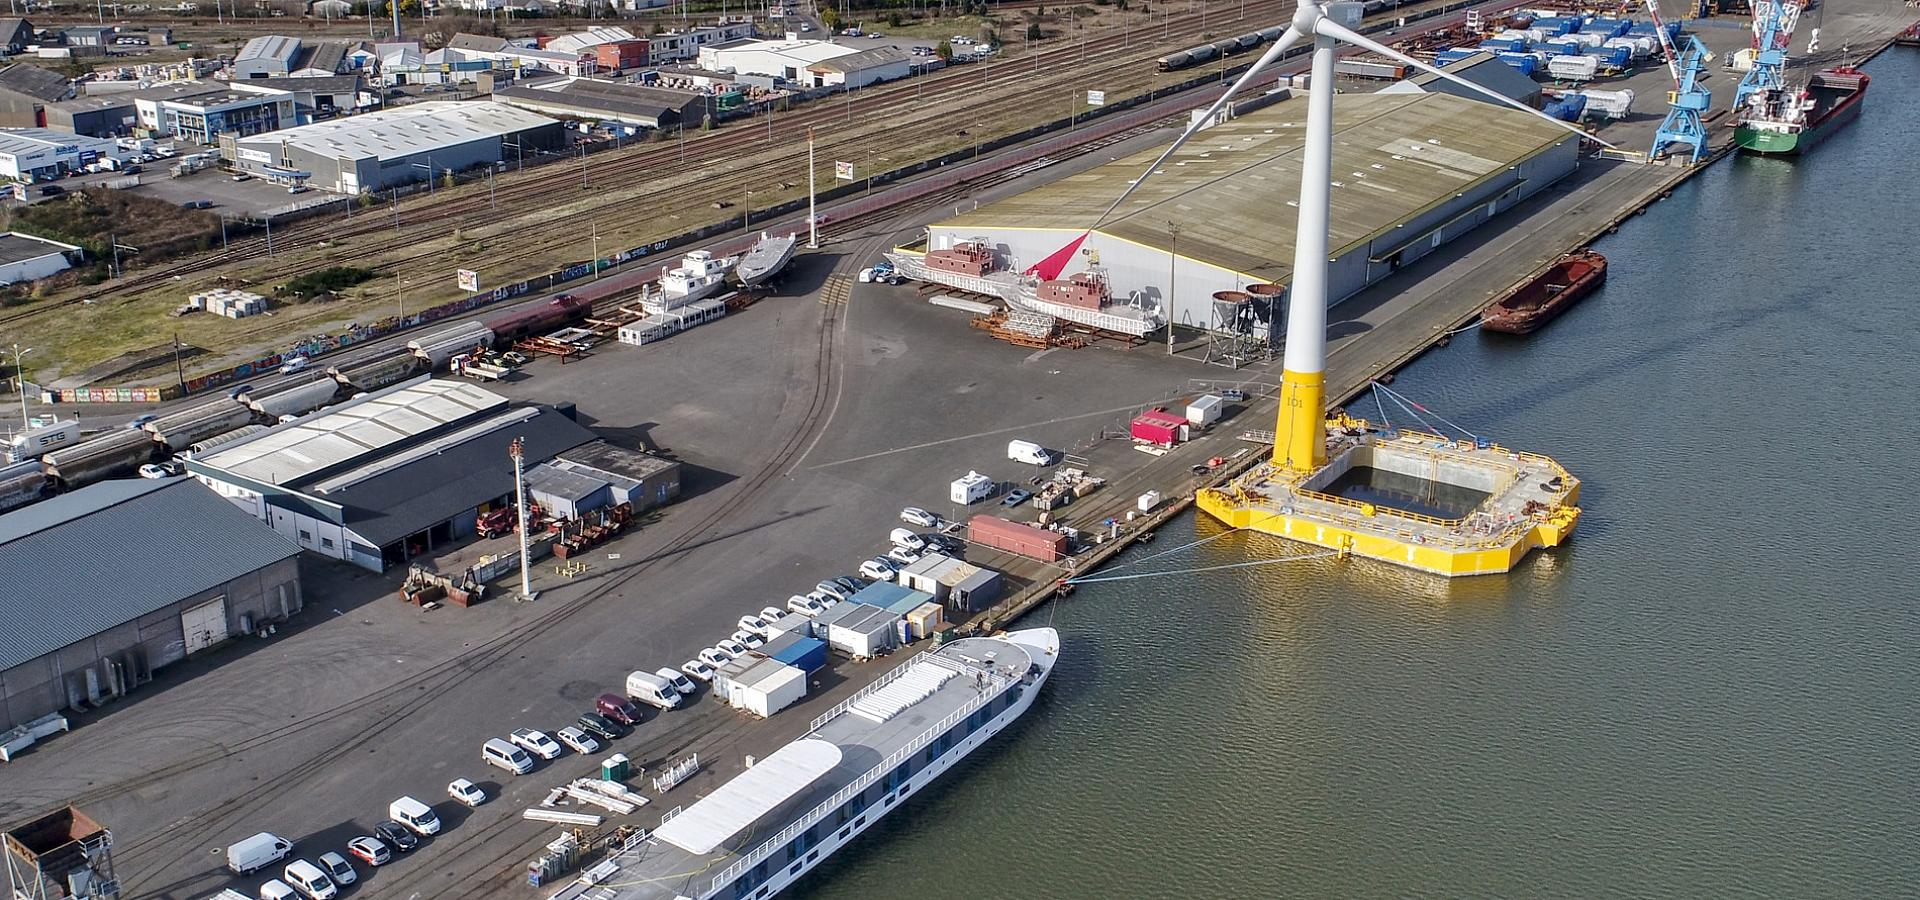 offshore wind turbine Ideol